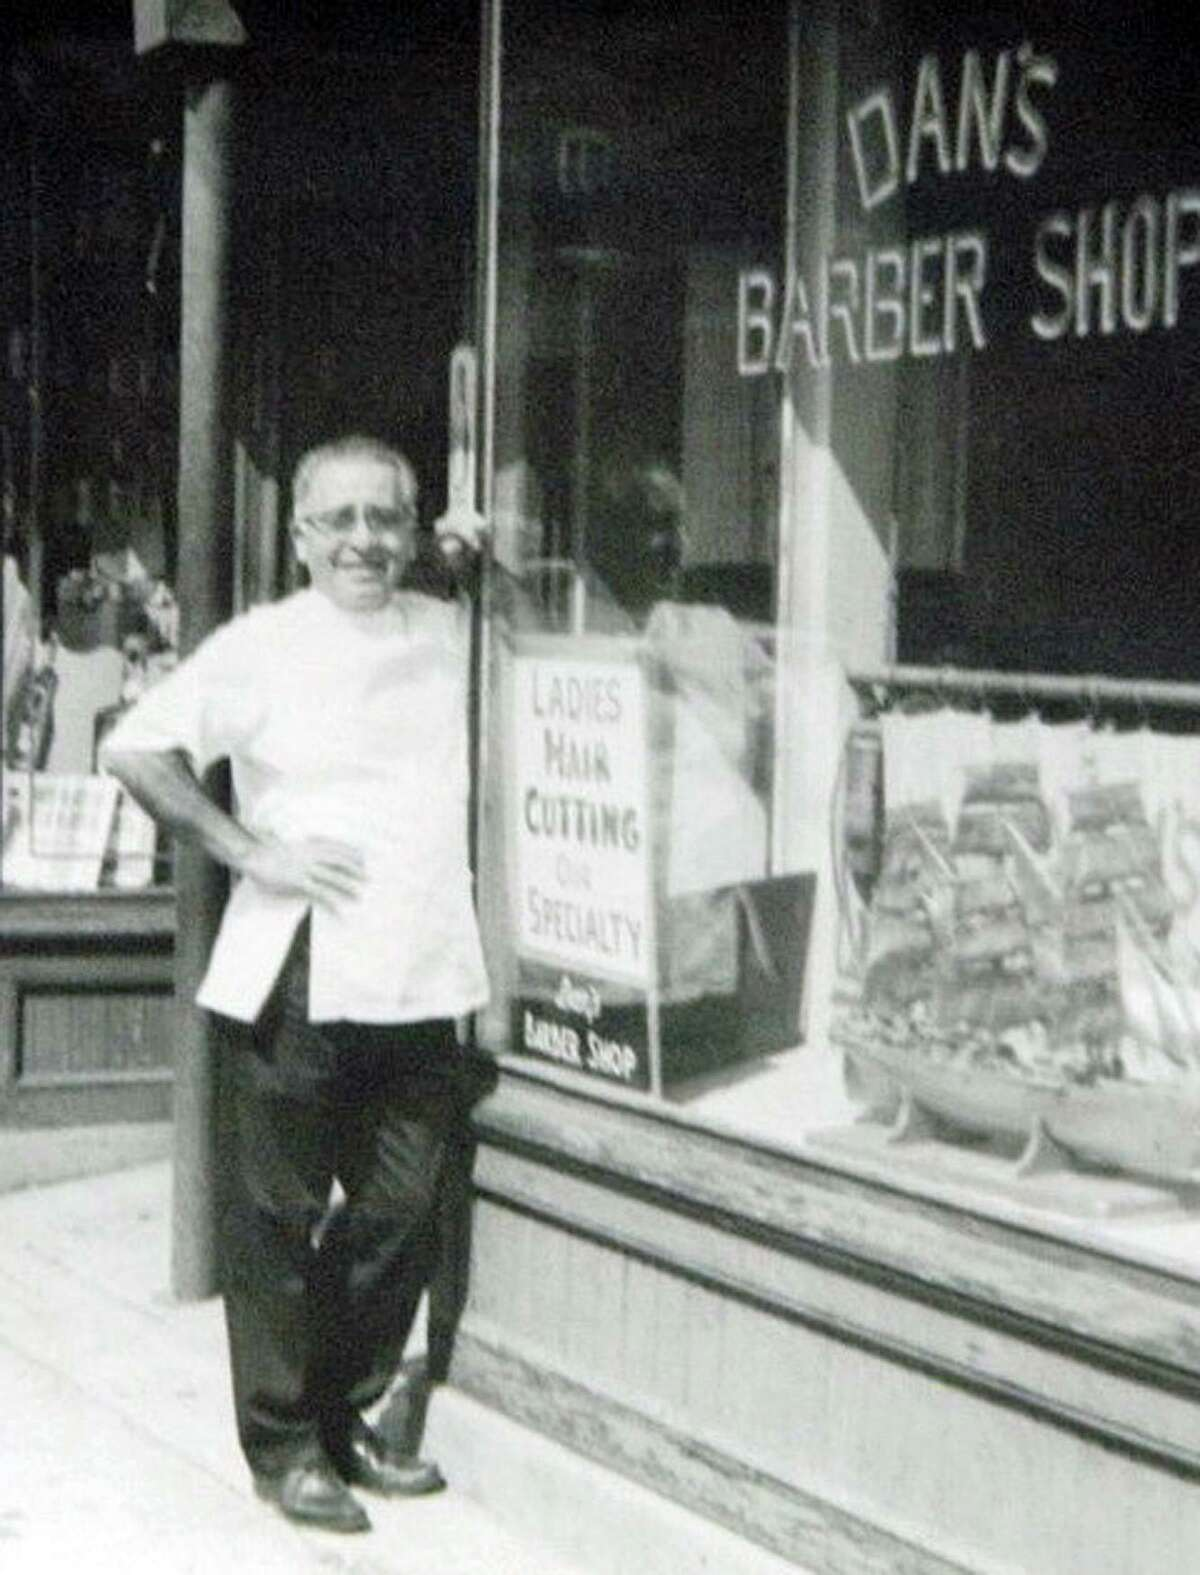 The Singing Barber, Dan Masto, Sr., in front of his barber shop in Wooster Square